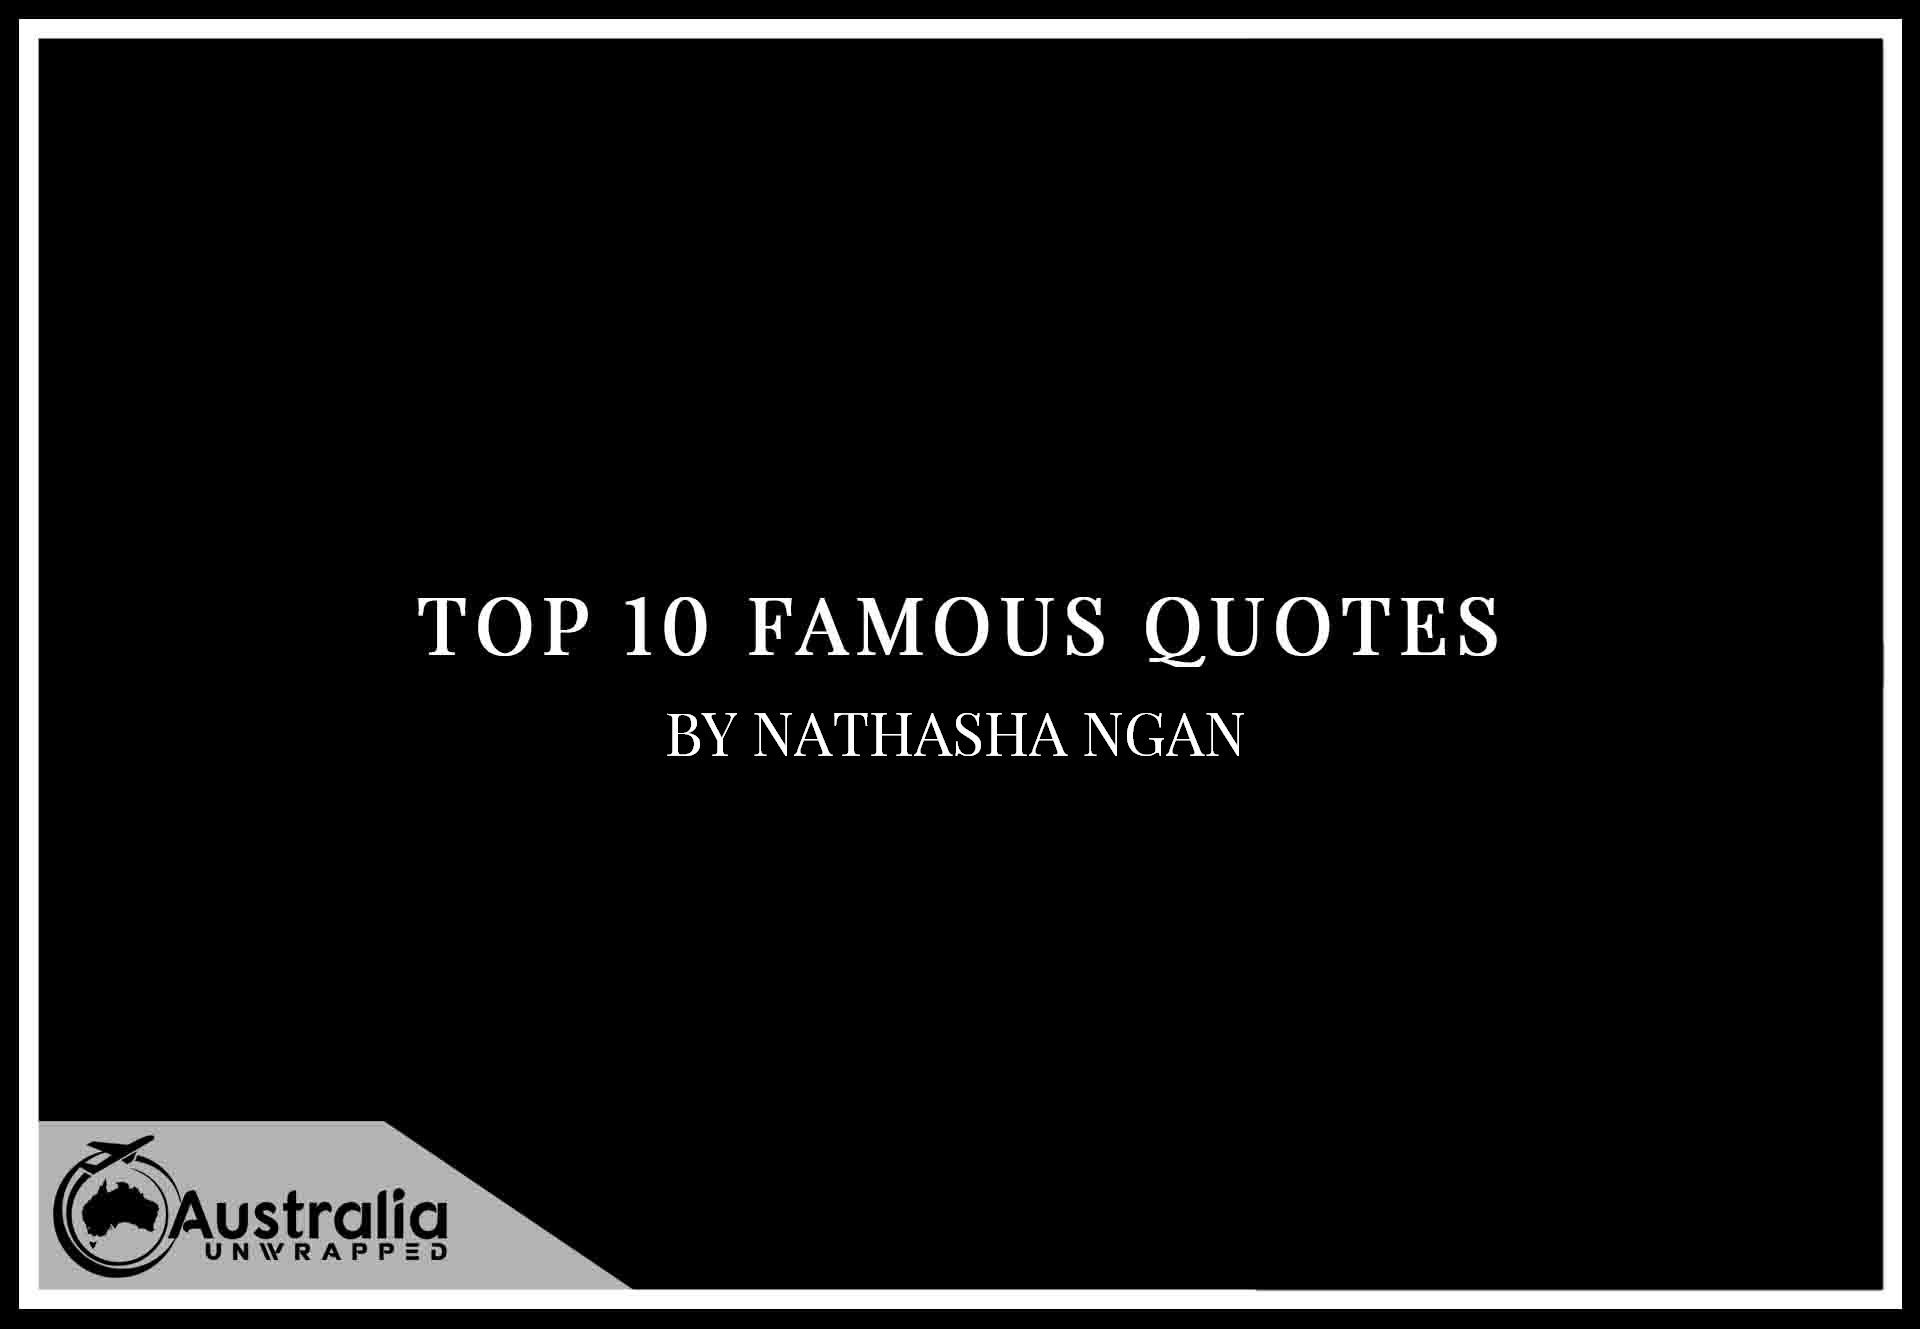 Top 10 Famous Quotes by Author Natasha Ngan